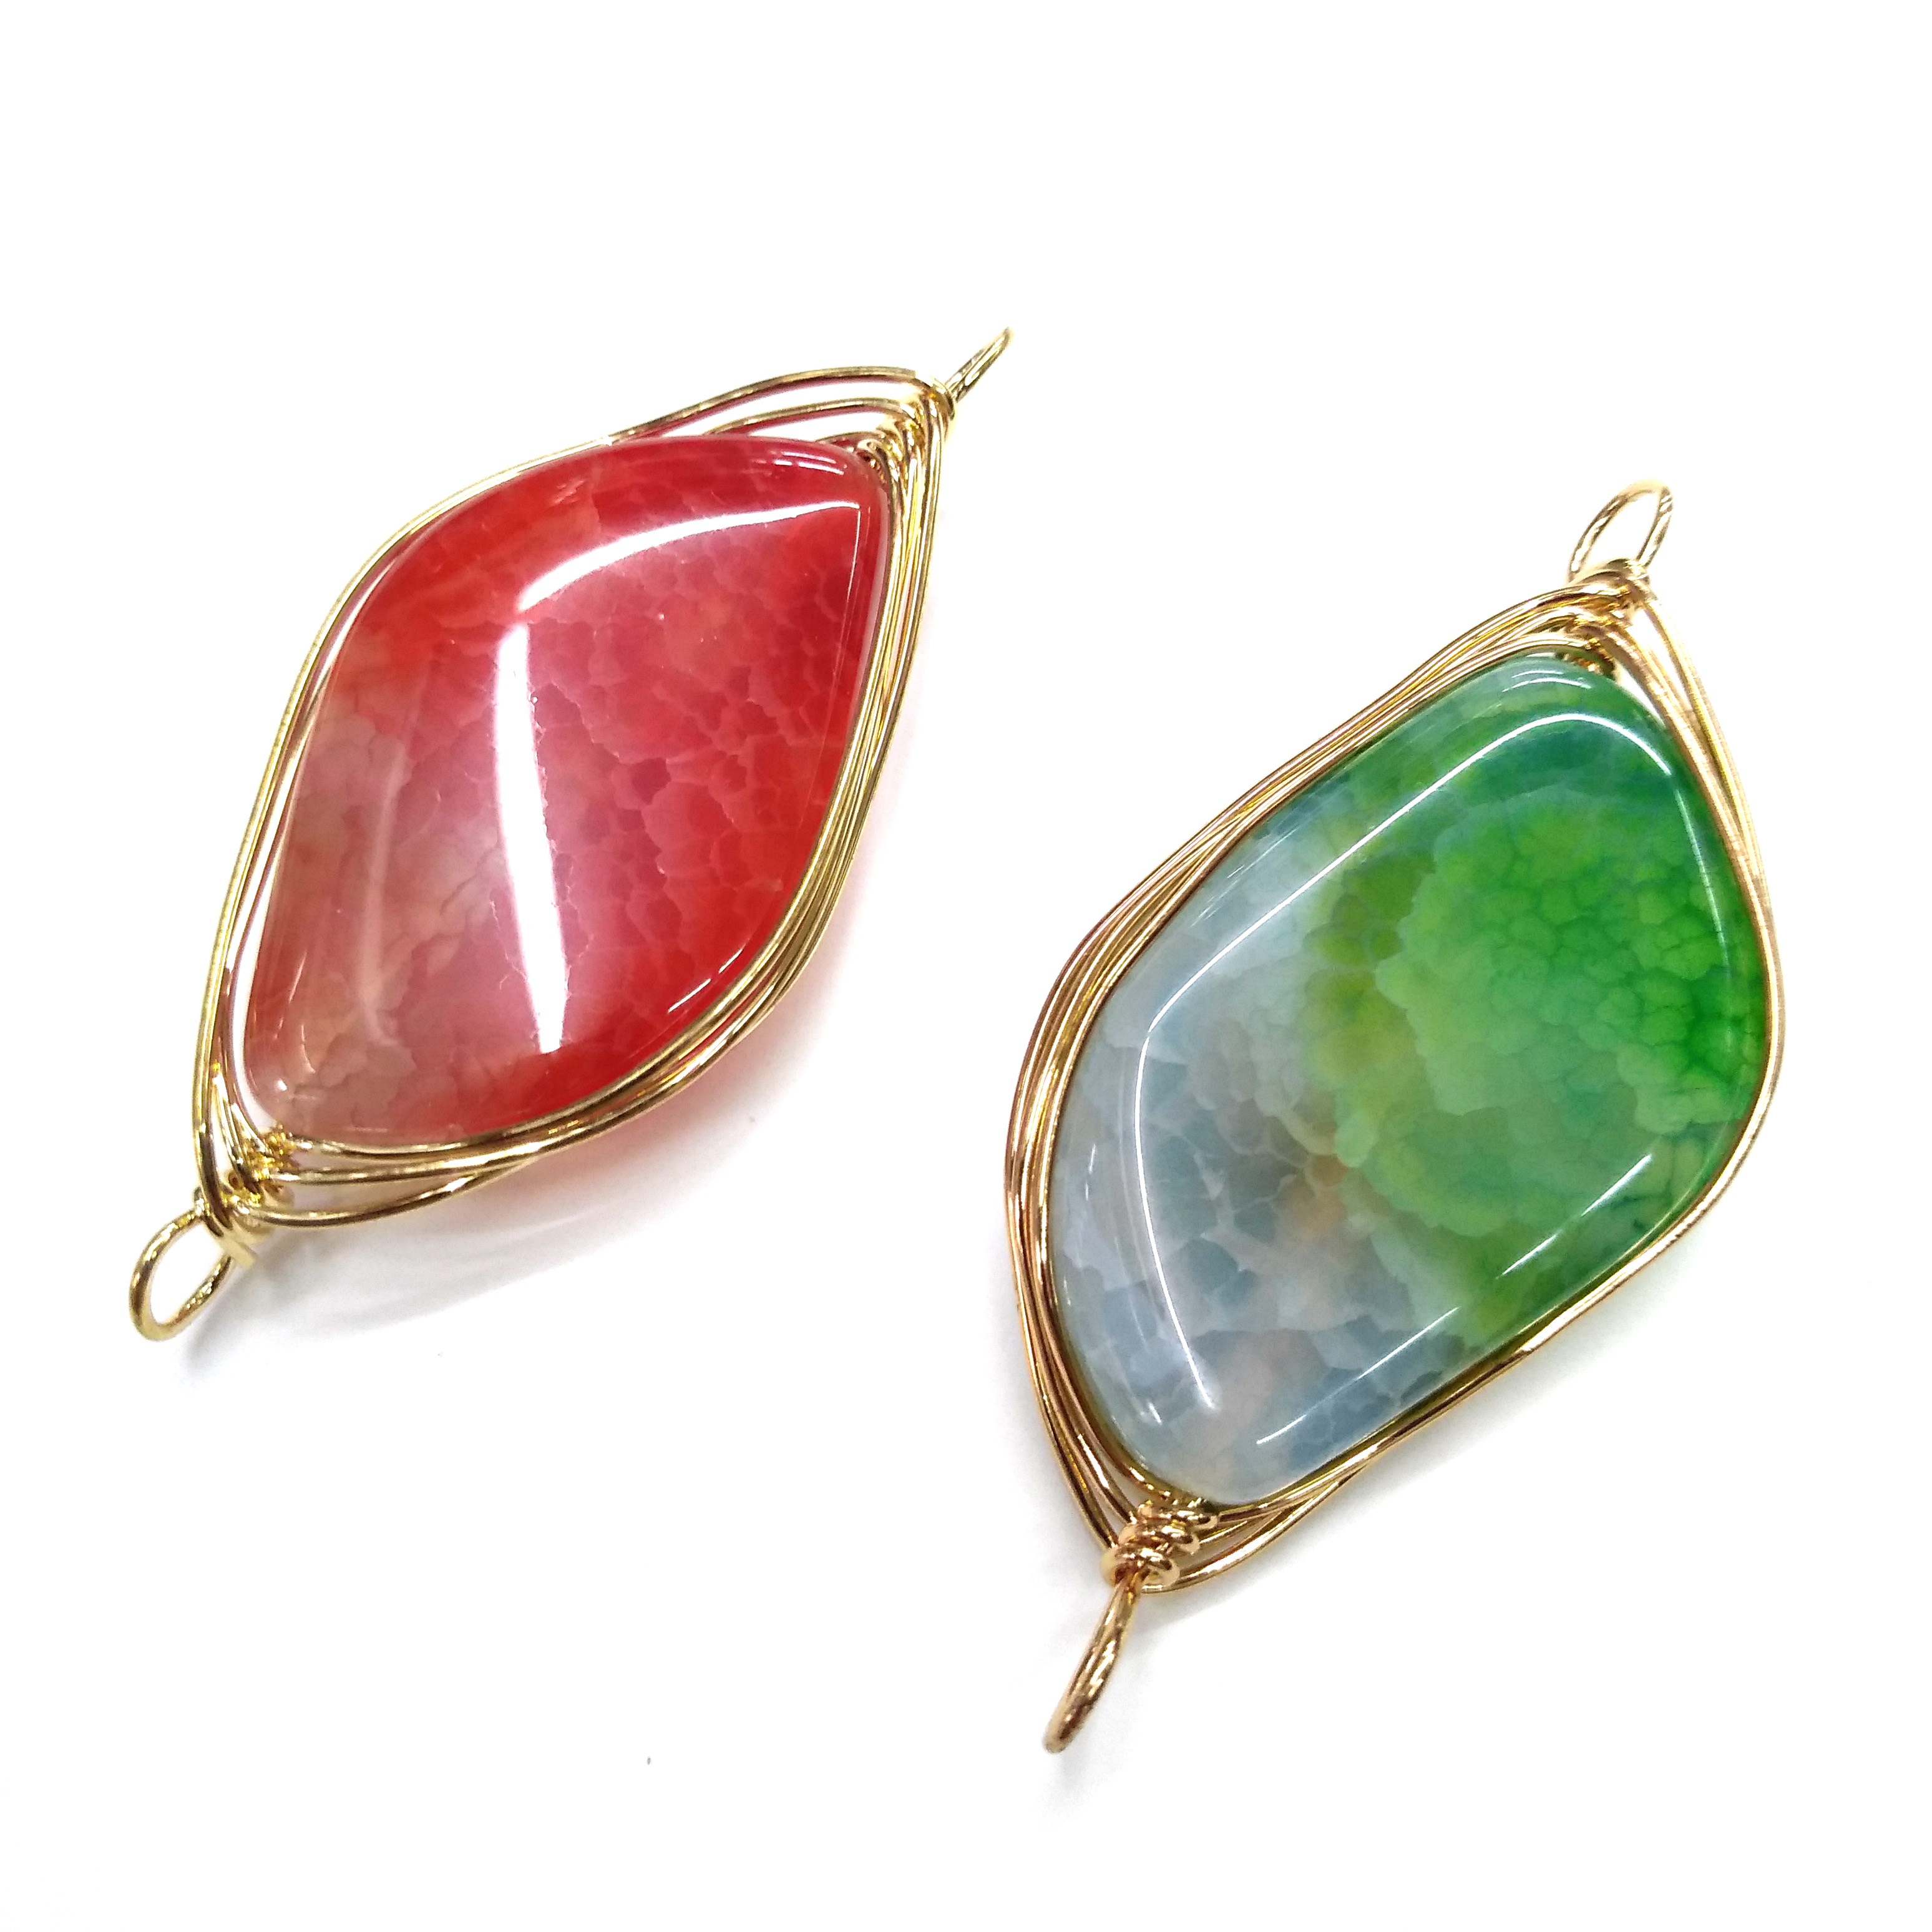 random color Natural Stone Agates Pendant Double hole connector Pendants for Jewelry Making DIY Necklace Accessories Size52x55mm in Pendants from Jewelry Accessories